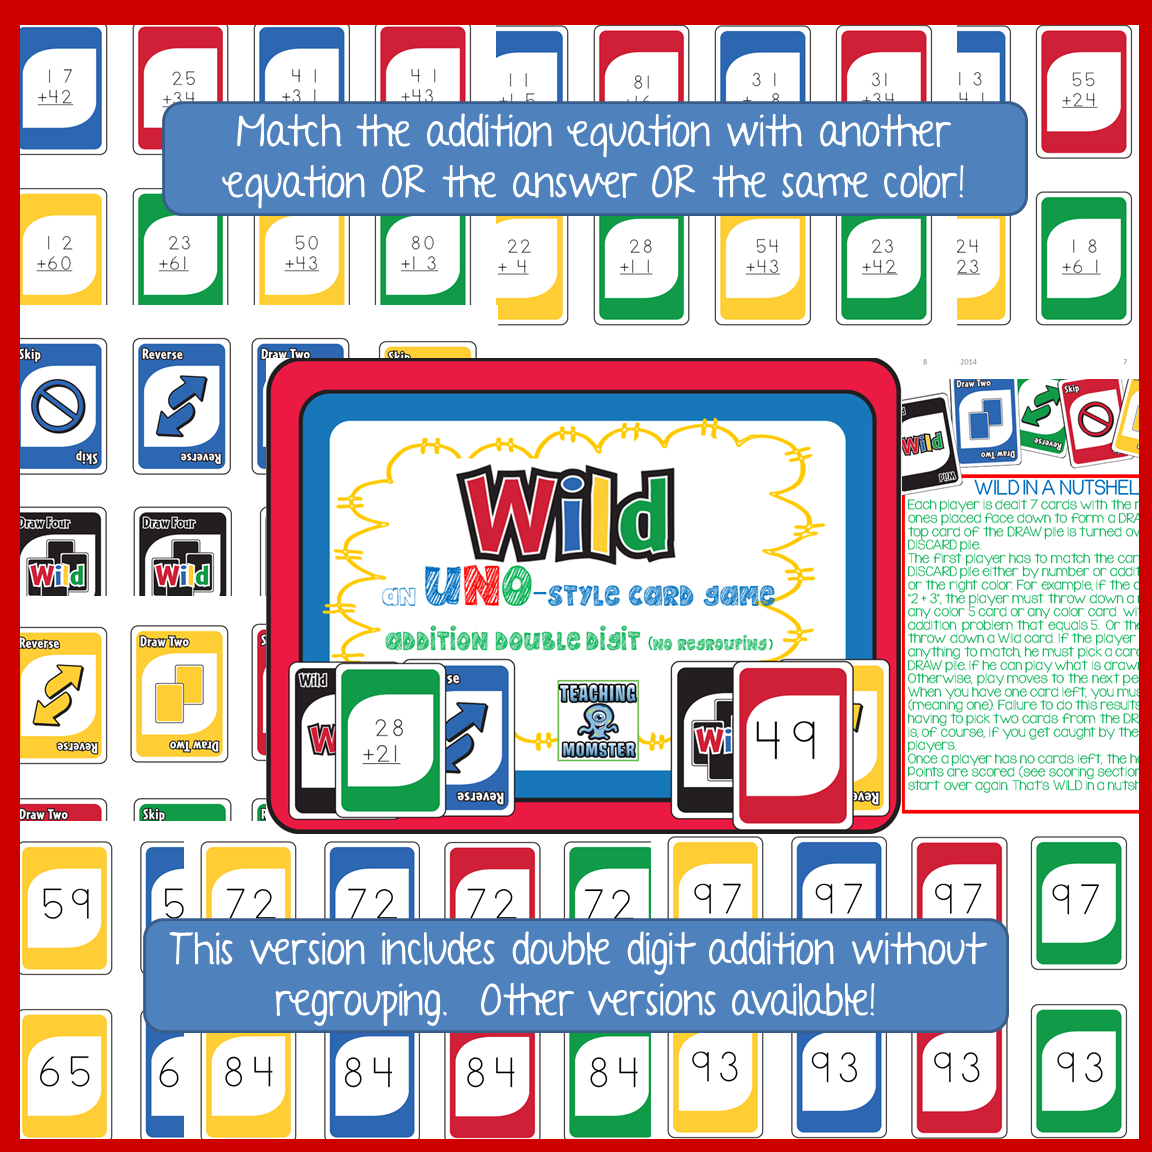 Wild Card Game Double Digit Addition No Regrouping